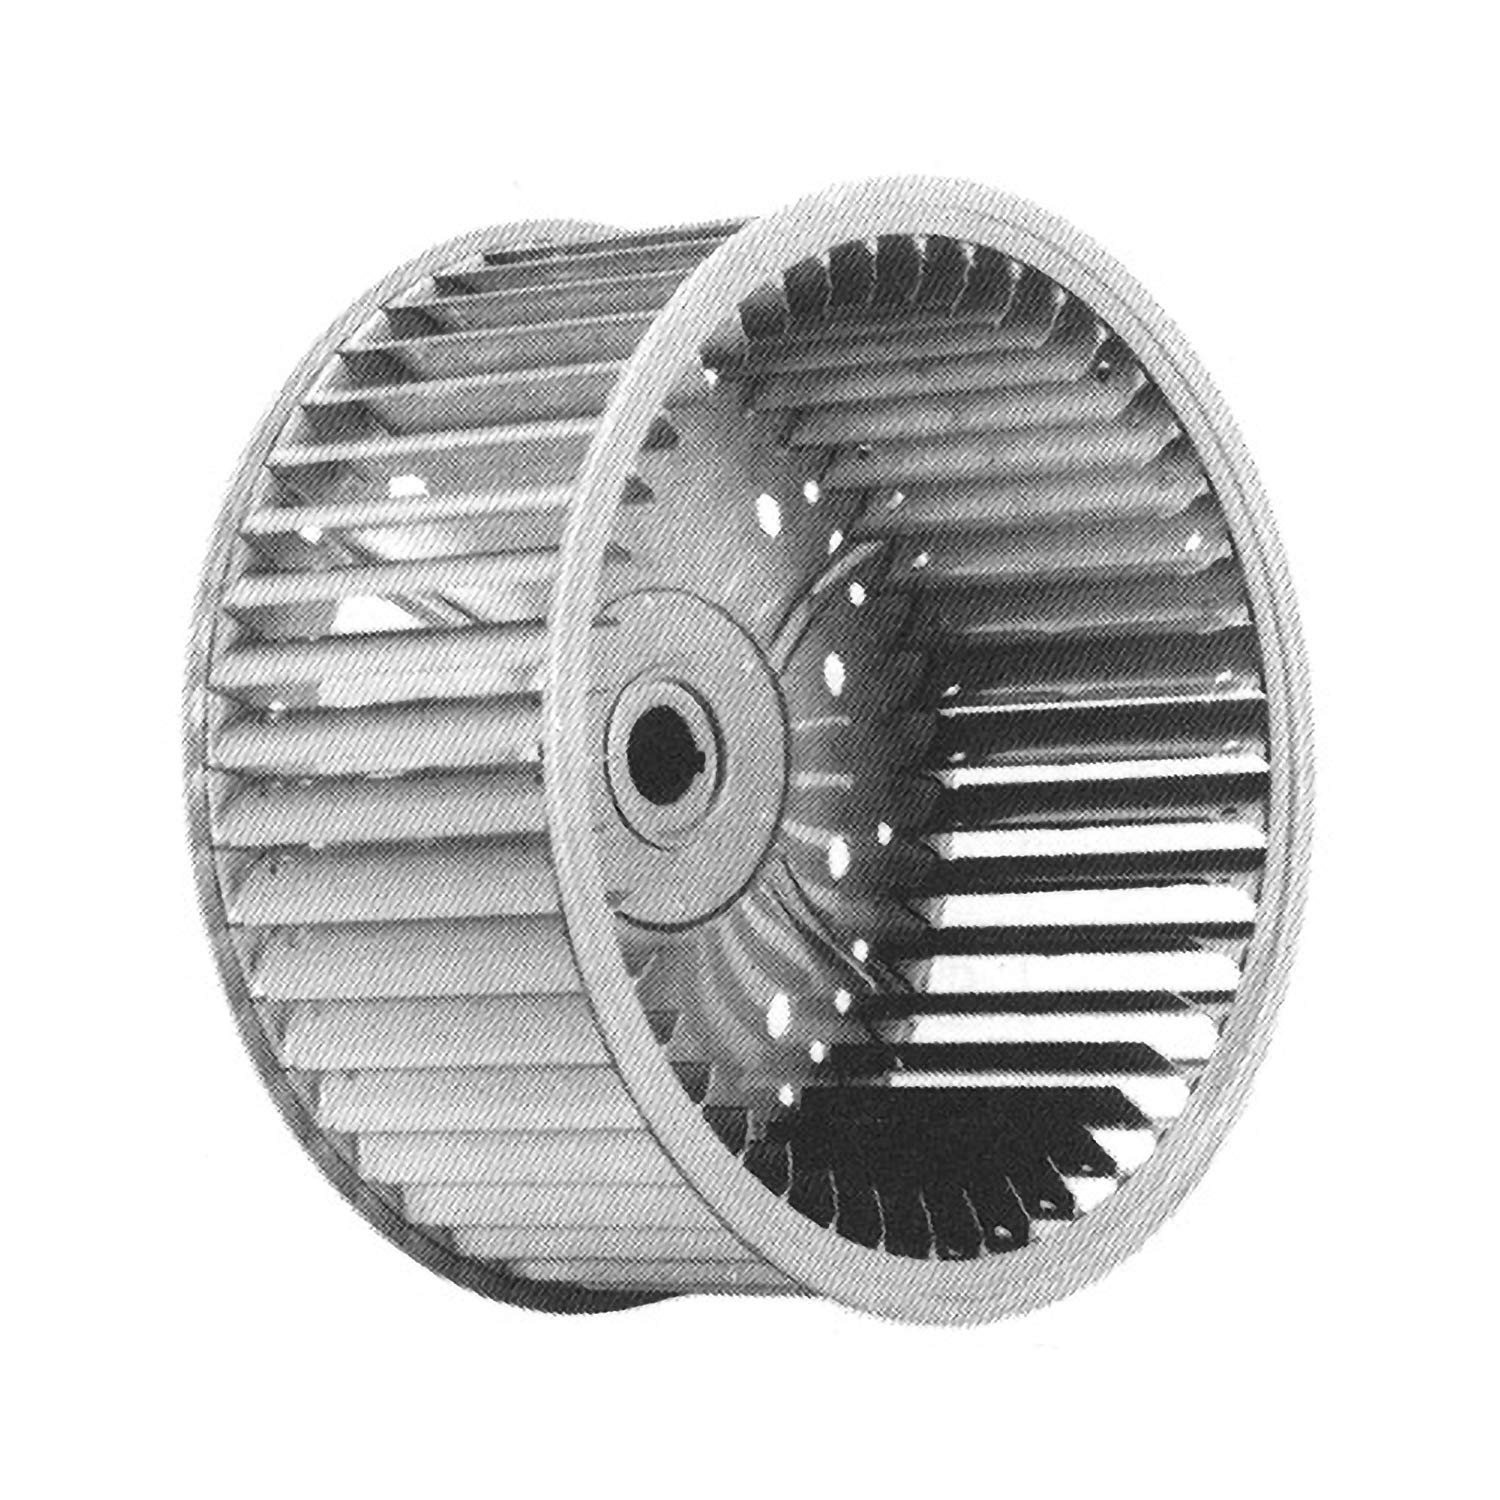 Max 68% OFF Packard L02895726 Single Inlet Blower Bore 2